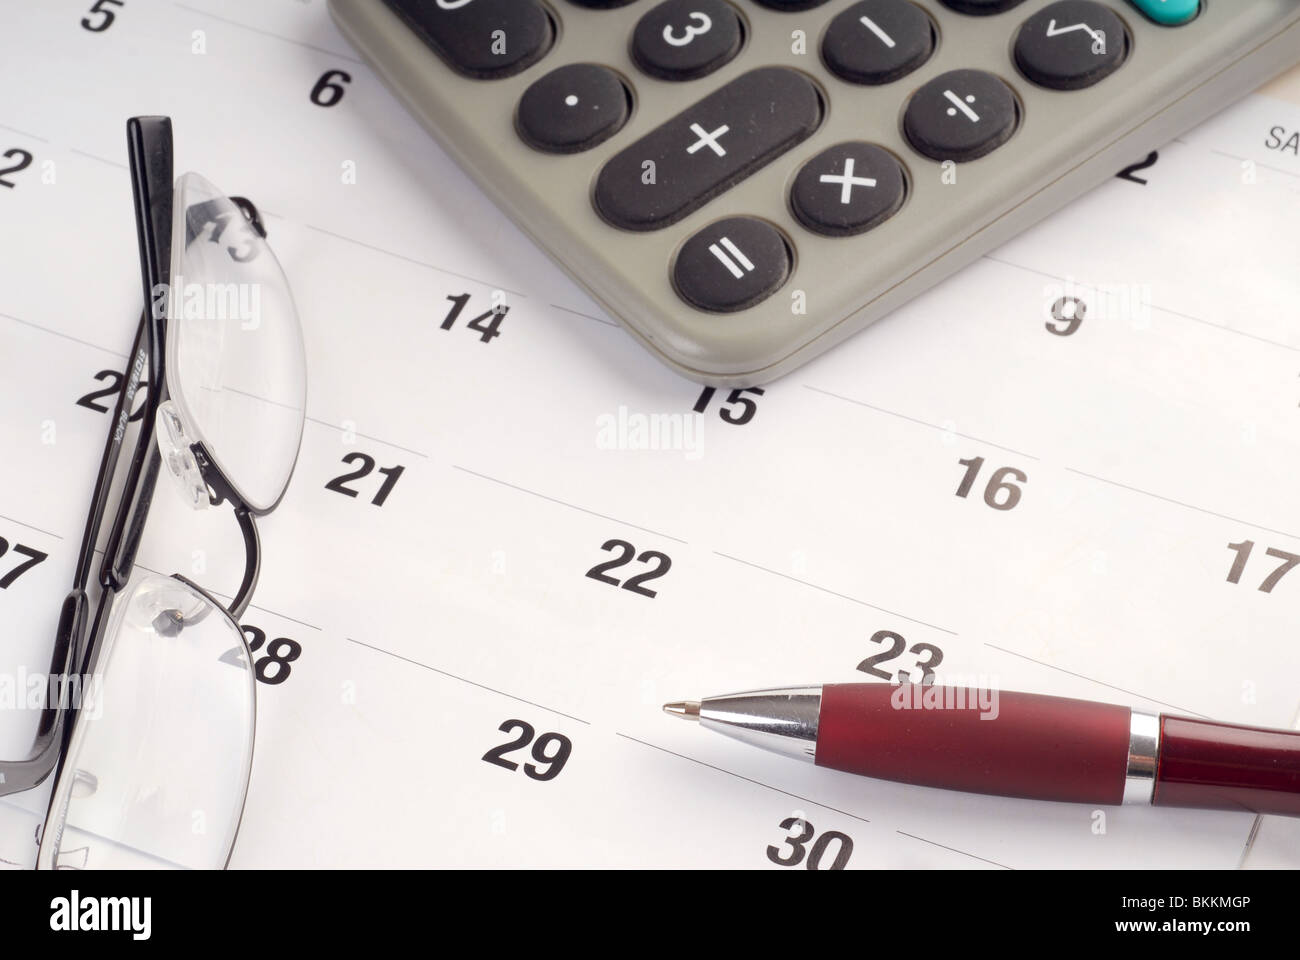 Calendar with calculator, glasses and pen on top of it - Stock Image